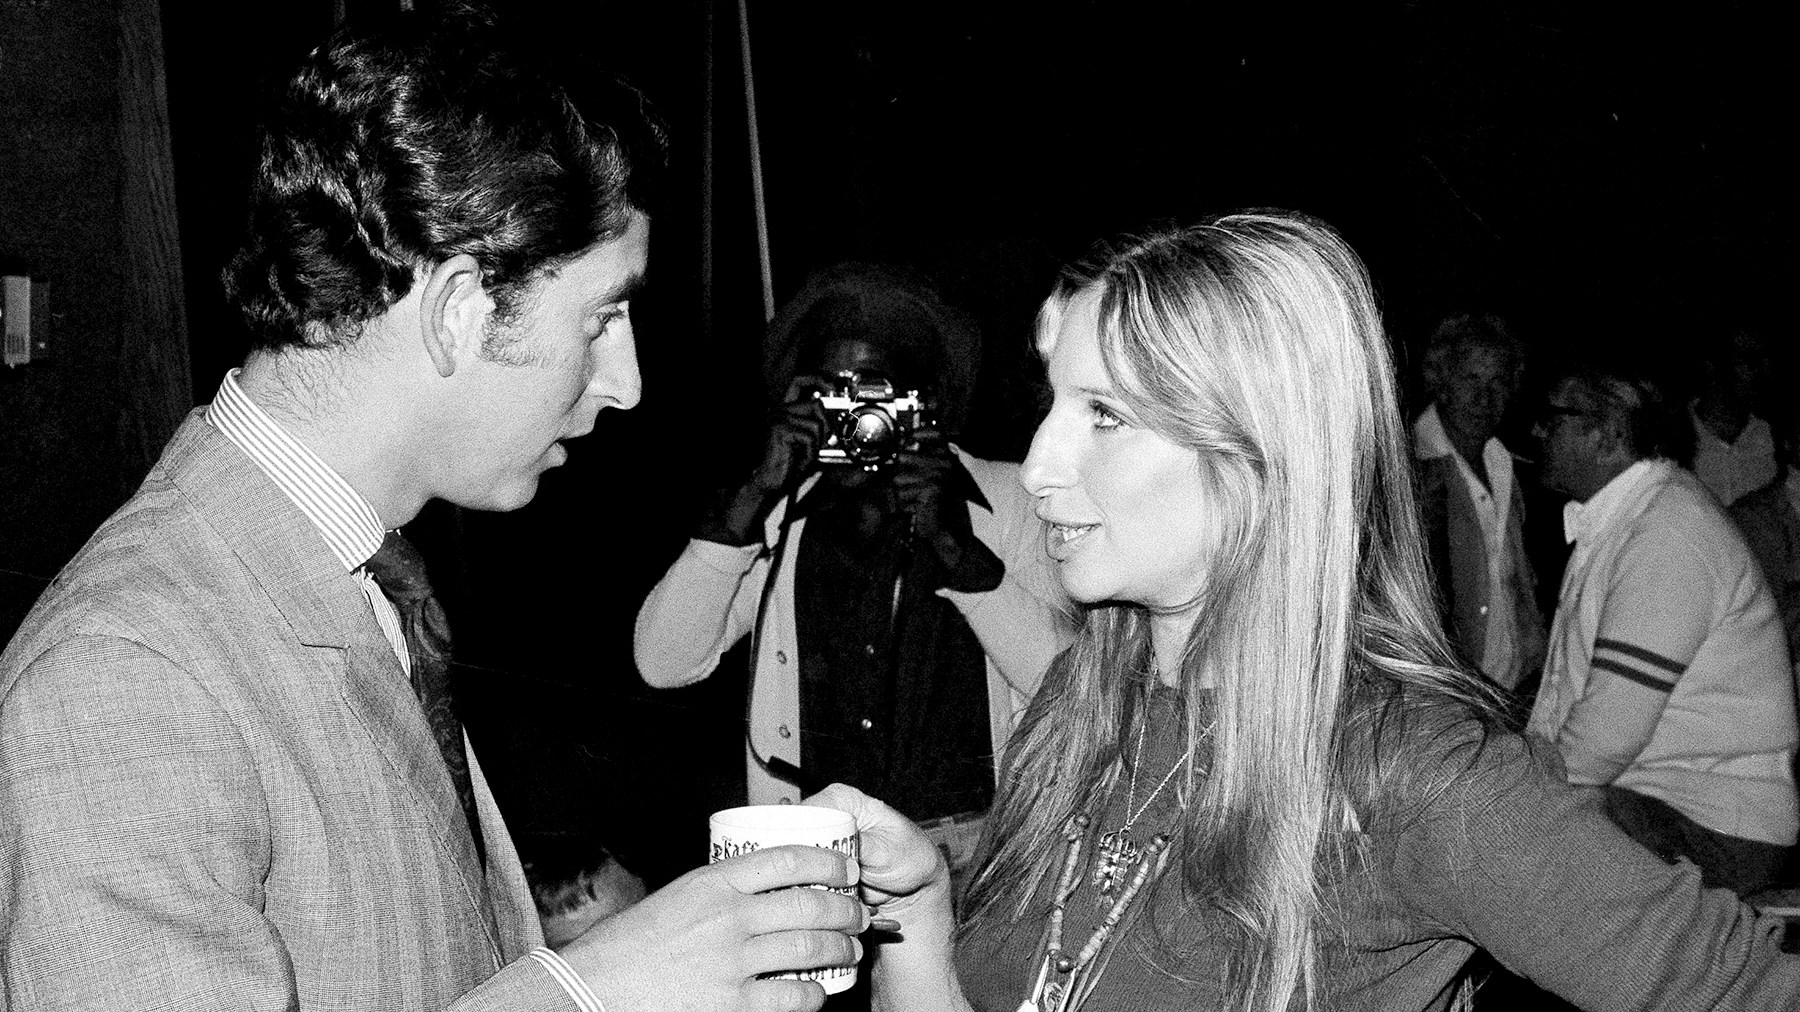 Barbra Streisand offers a cup of coffee to Prince Charles of Great Britain as they chat on a set at Warner Bros. studio in Los Angeles, CA, March. 19, 1974.